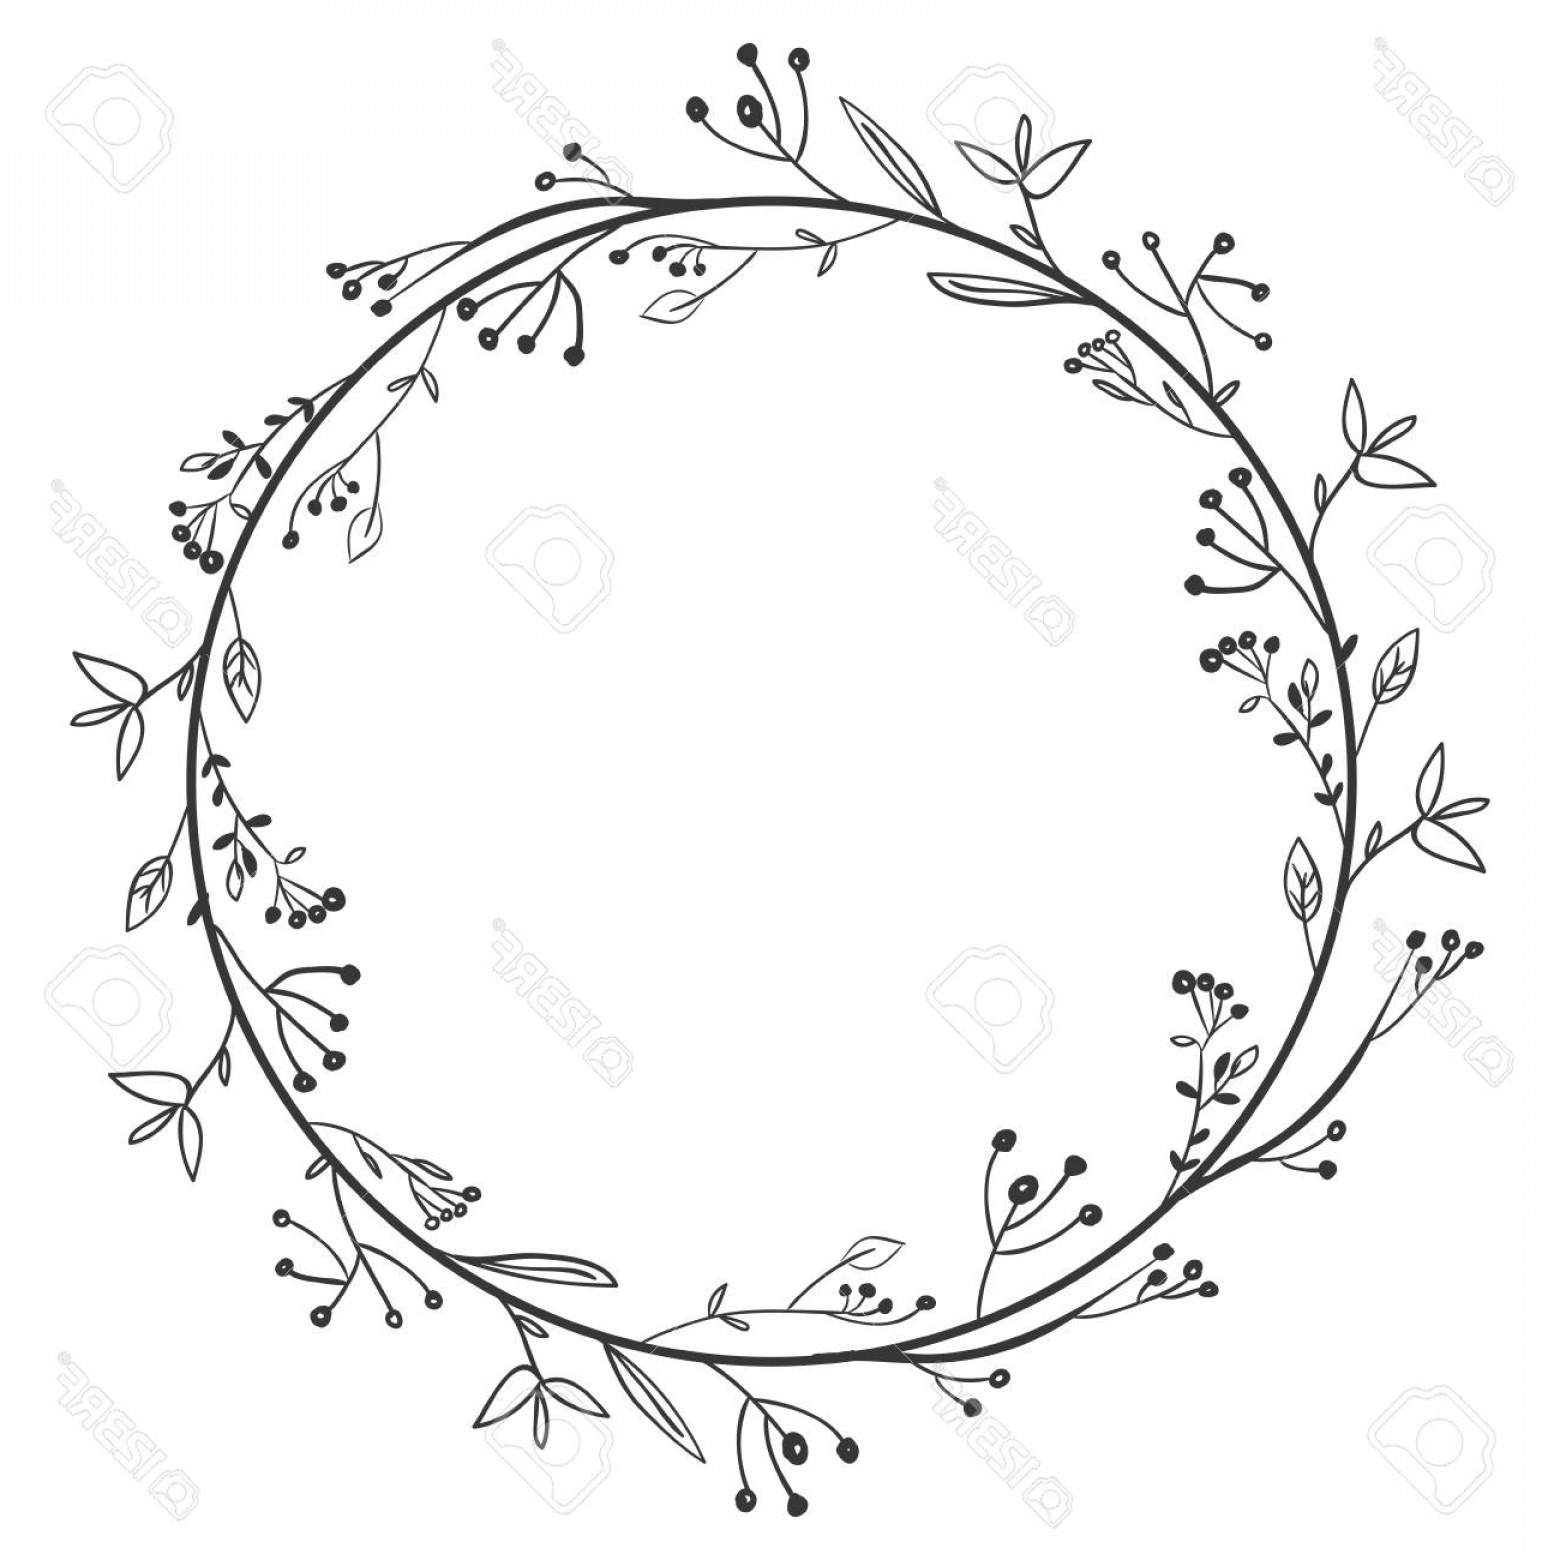 Floral Vector Illustration: Photostock Vector Gray Scale Decorative Simple Crown Floral Vector Illustration